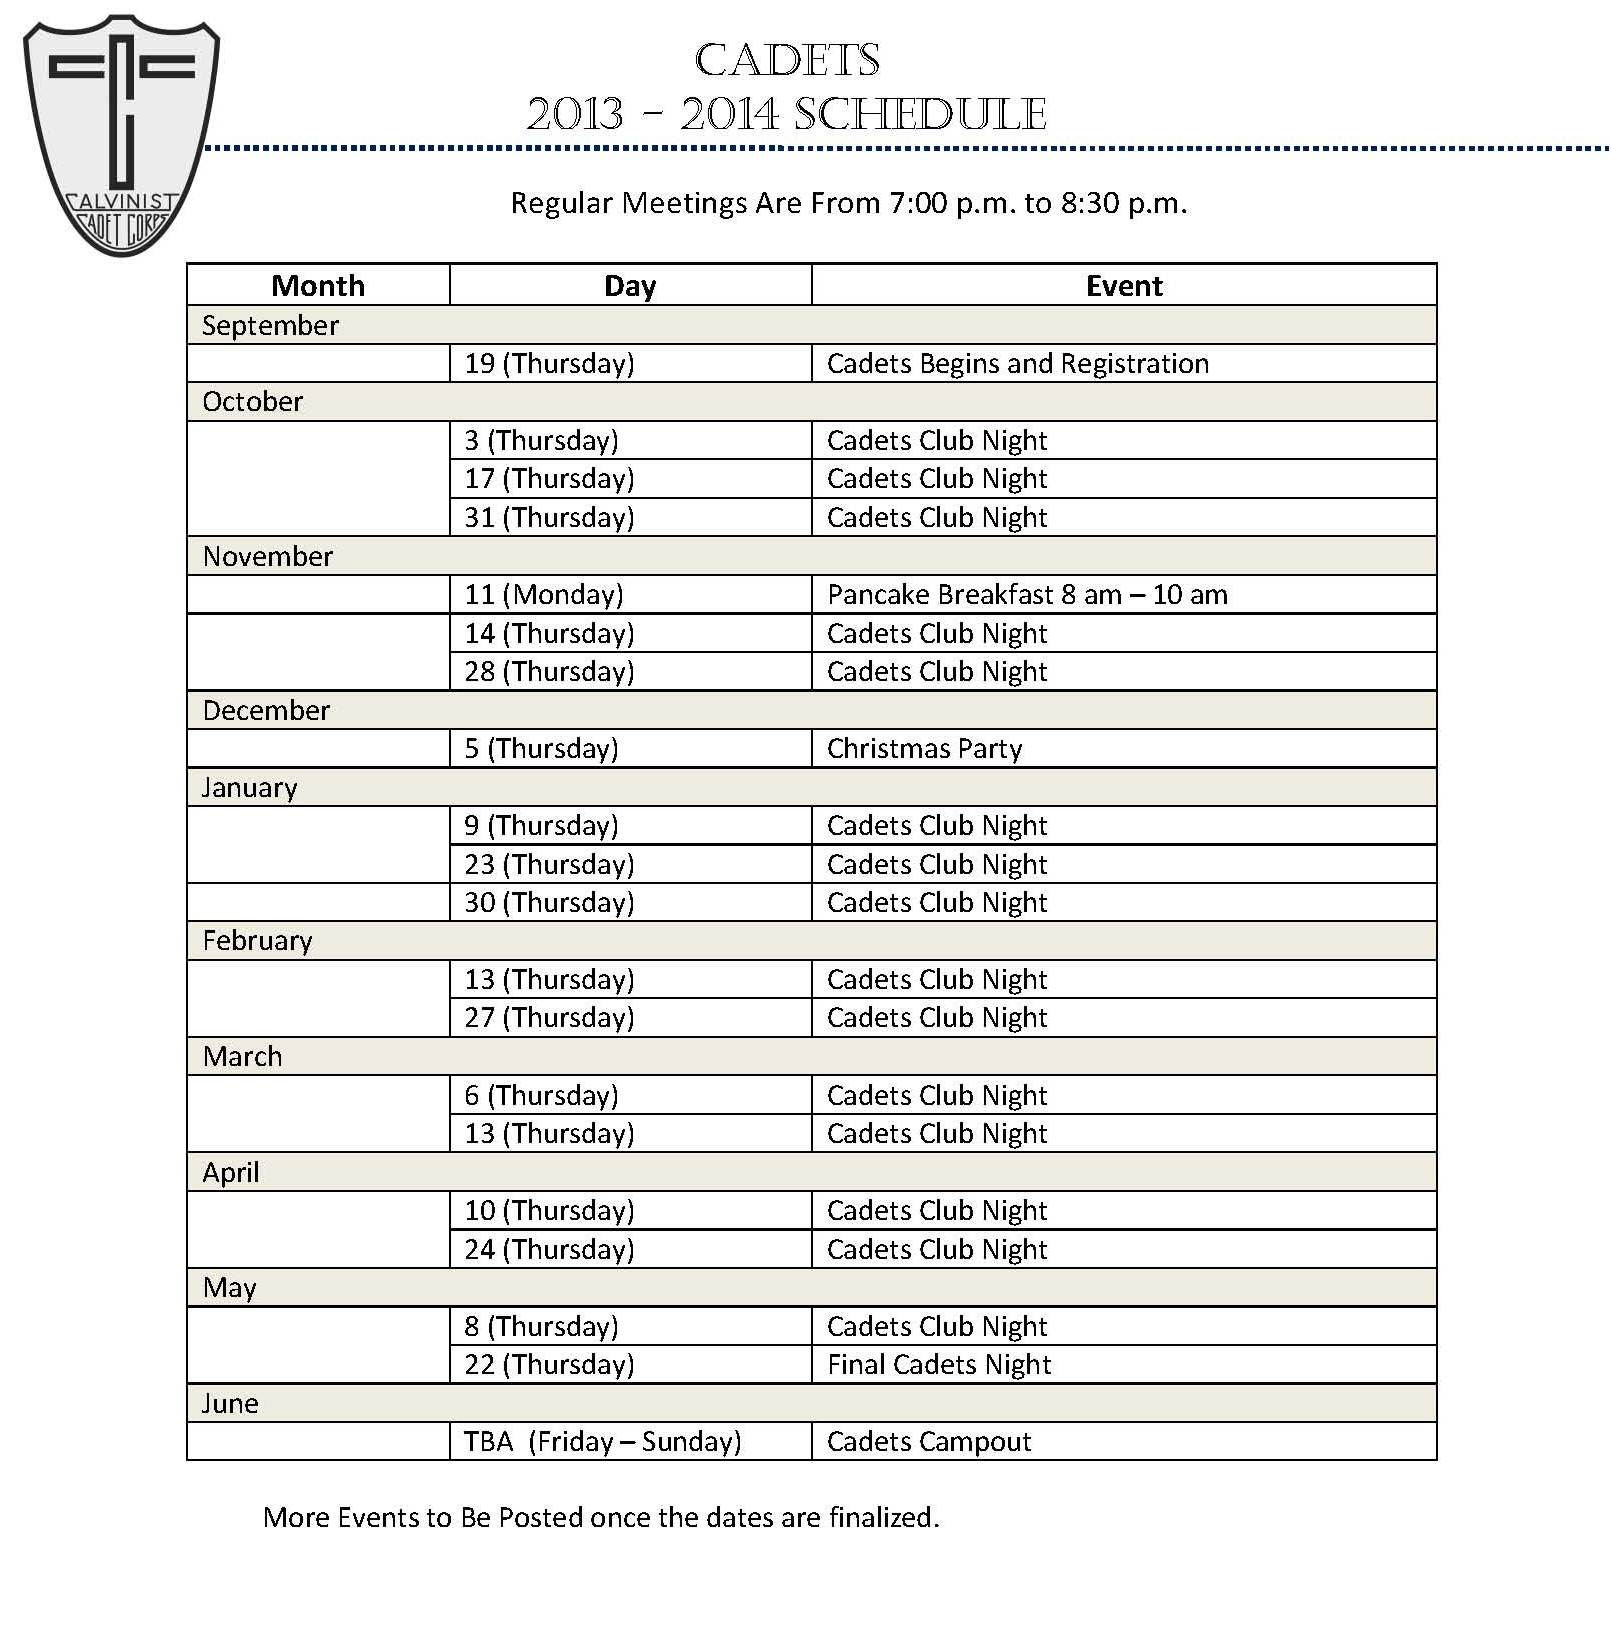 Preliminary Schedule Cadets